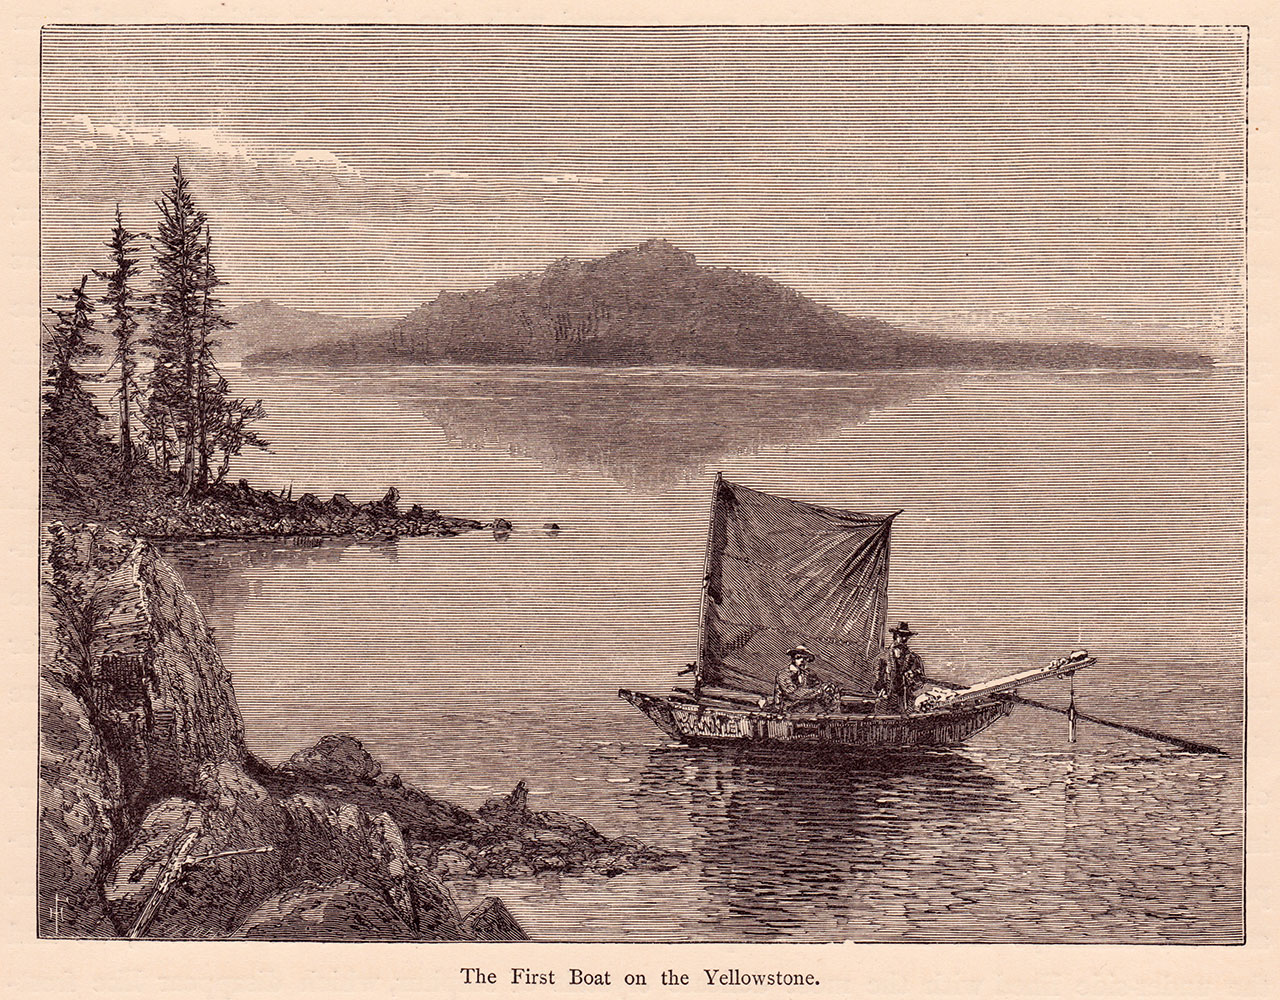 Moran's illustration of Anna, the first boat on Yellowstone Lake, is a composite of two 1871 W.H. Jackson photographs. Moran likely did this to give the viewer a sense of perspective of the largest body of water above 7,000 feet in the Lower 48 states.